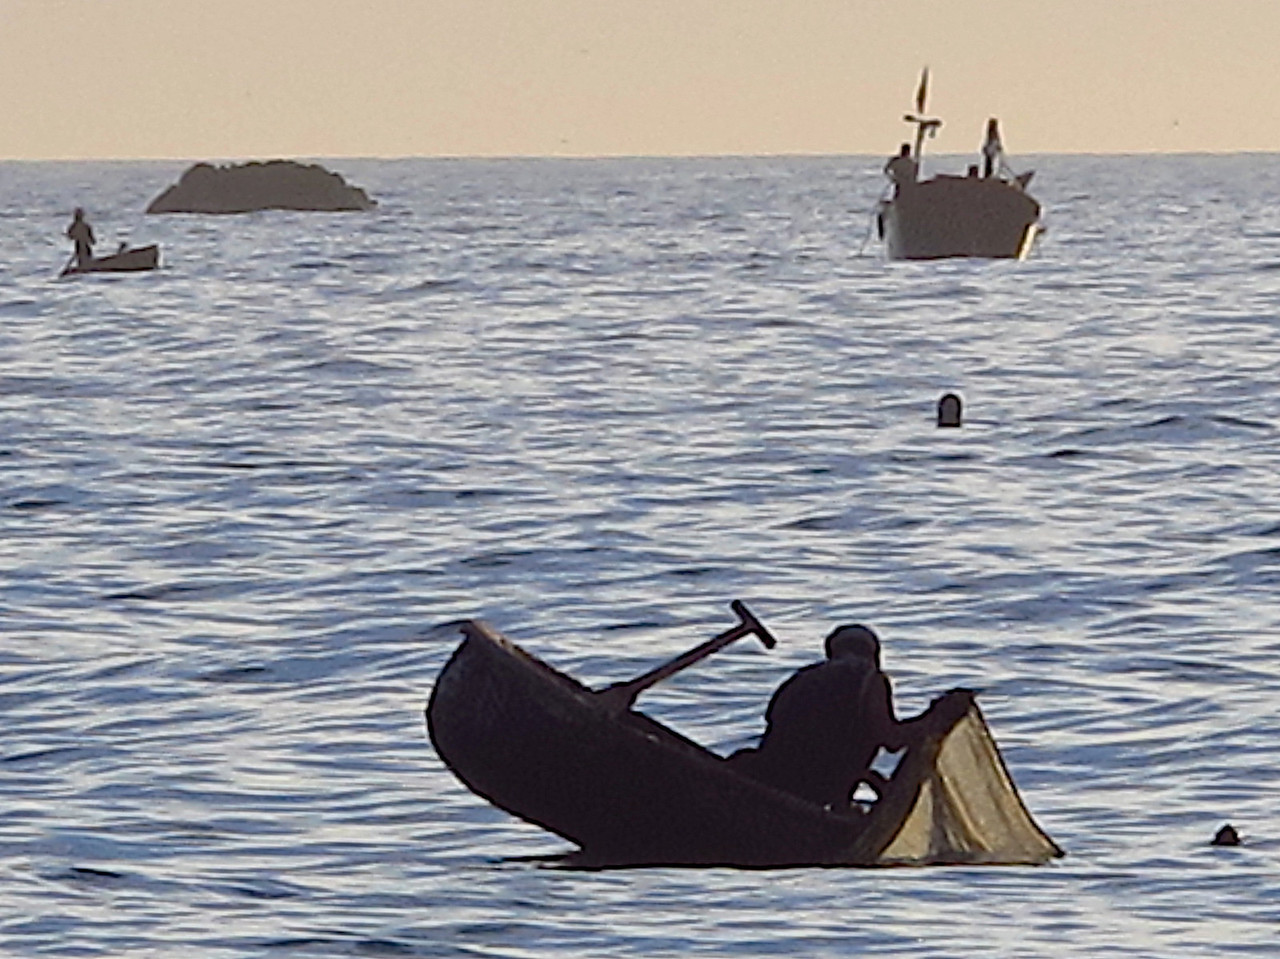 The round boats they use are small and many of the fisherman can't swim.